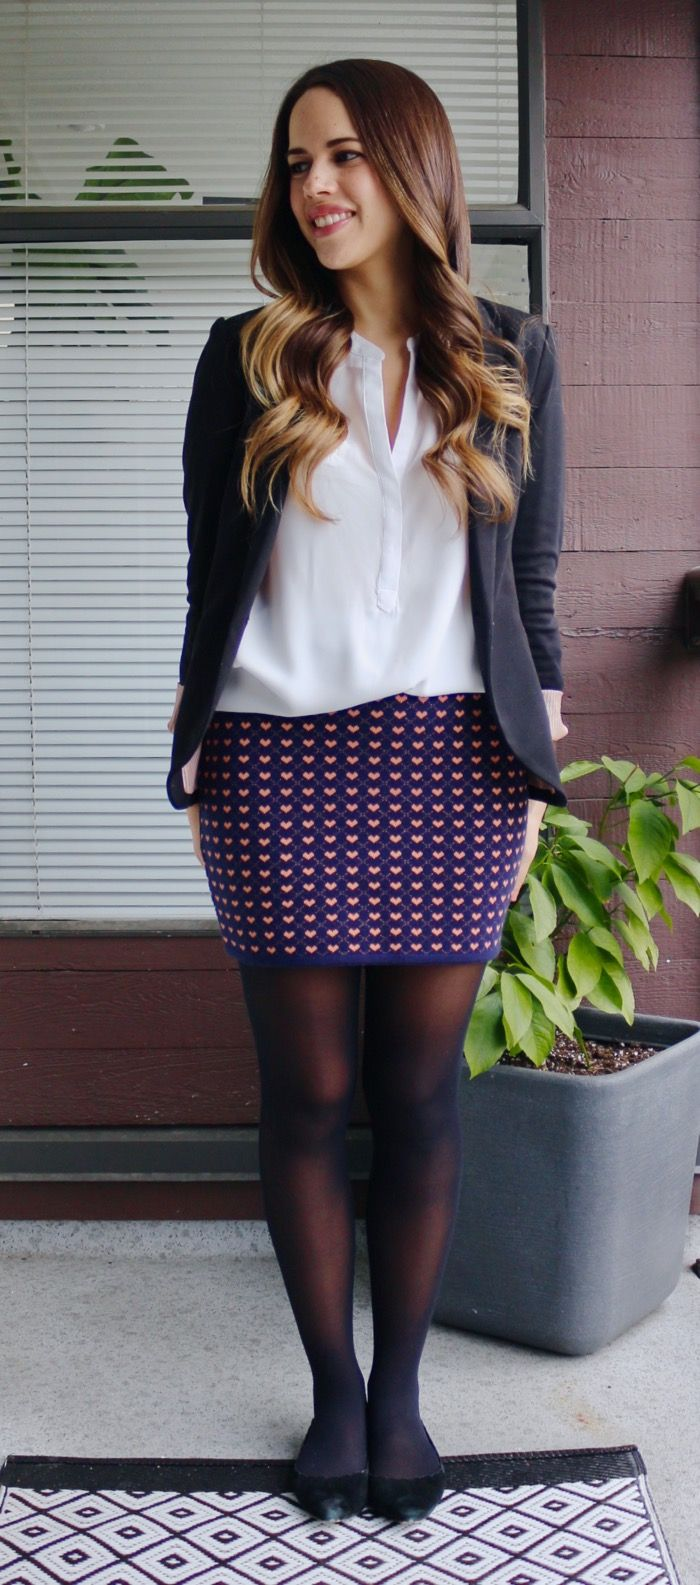 Jules in Flats - Valentine's Day Outfit (Heart-print knit skirt)